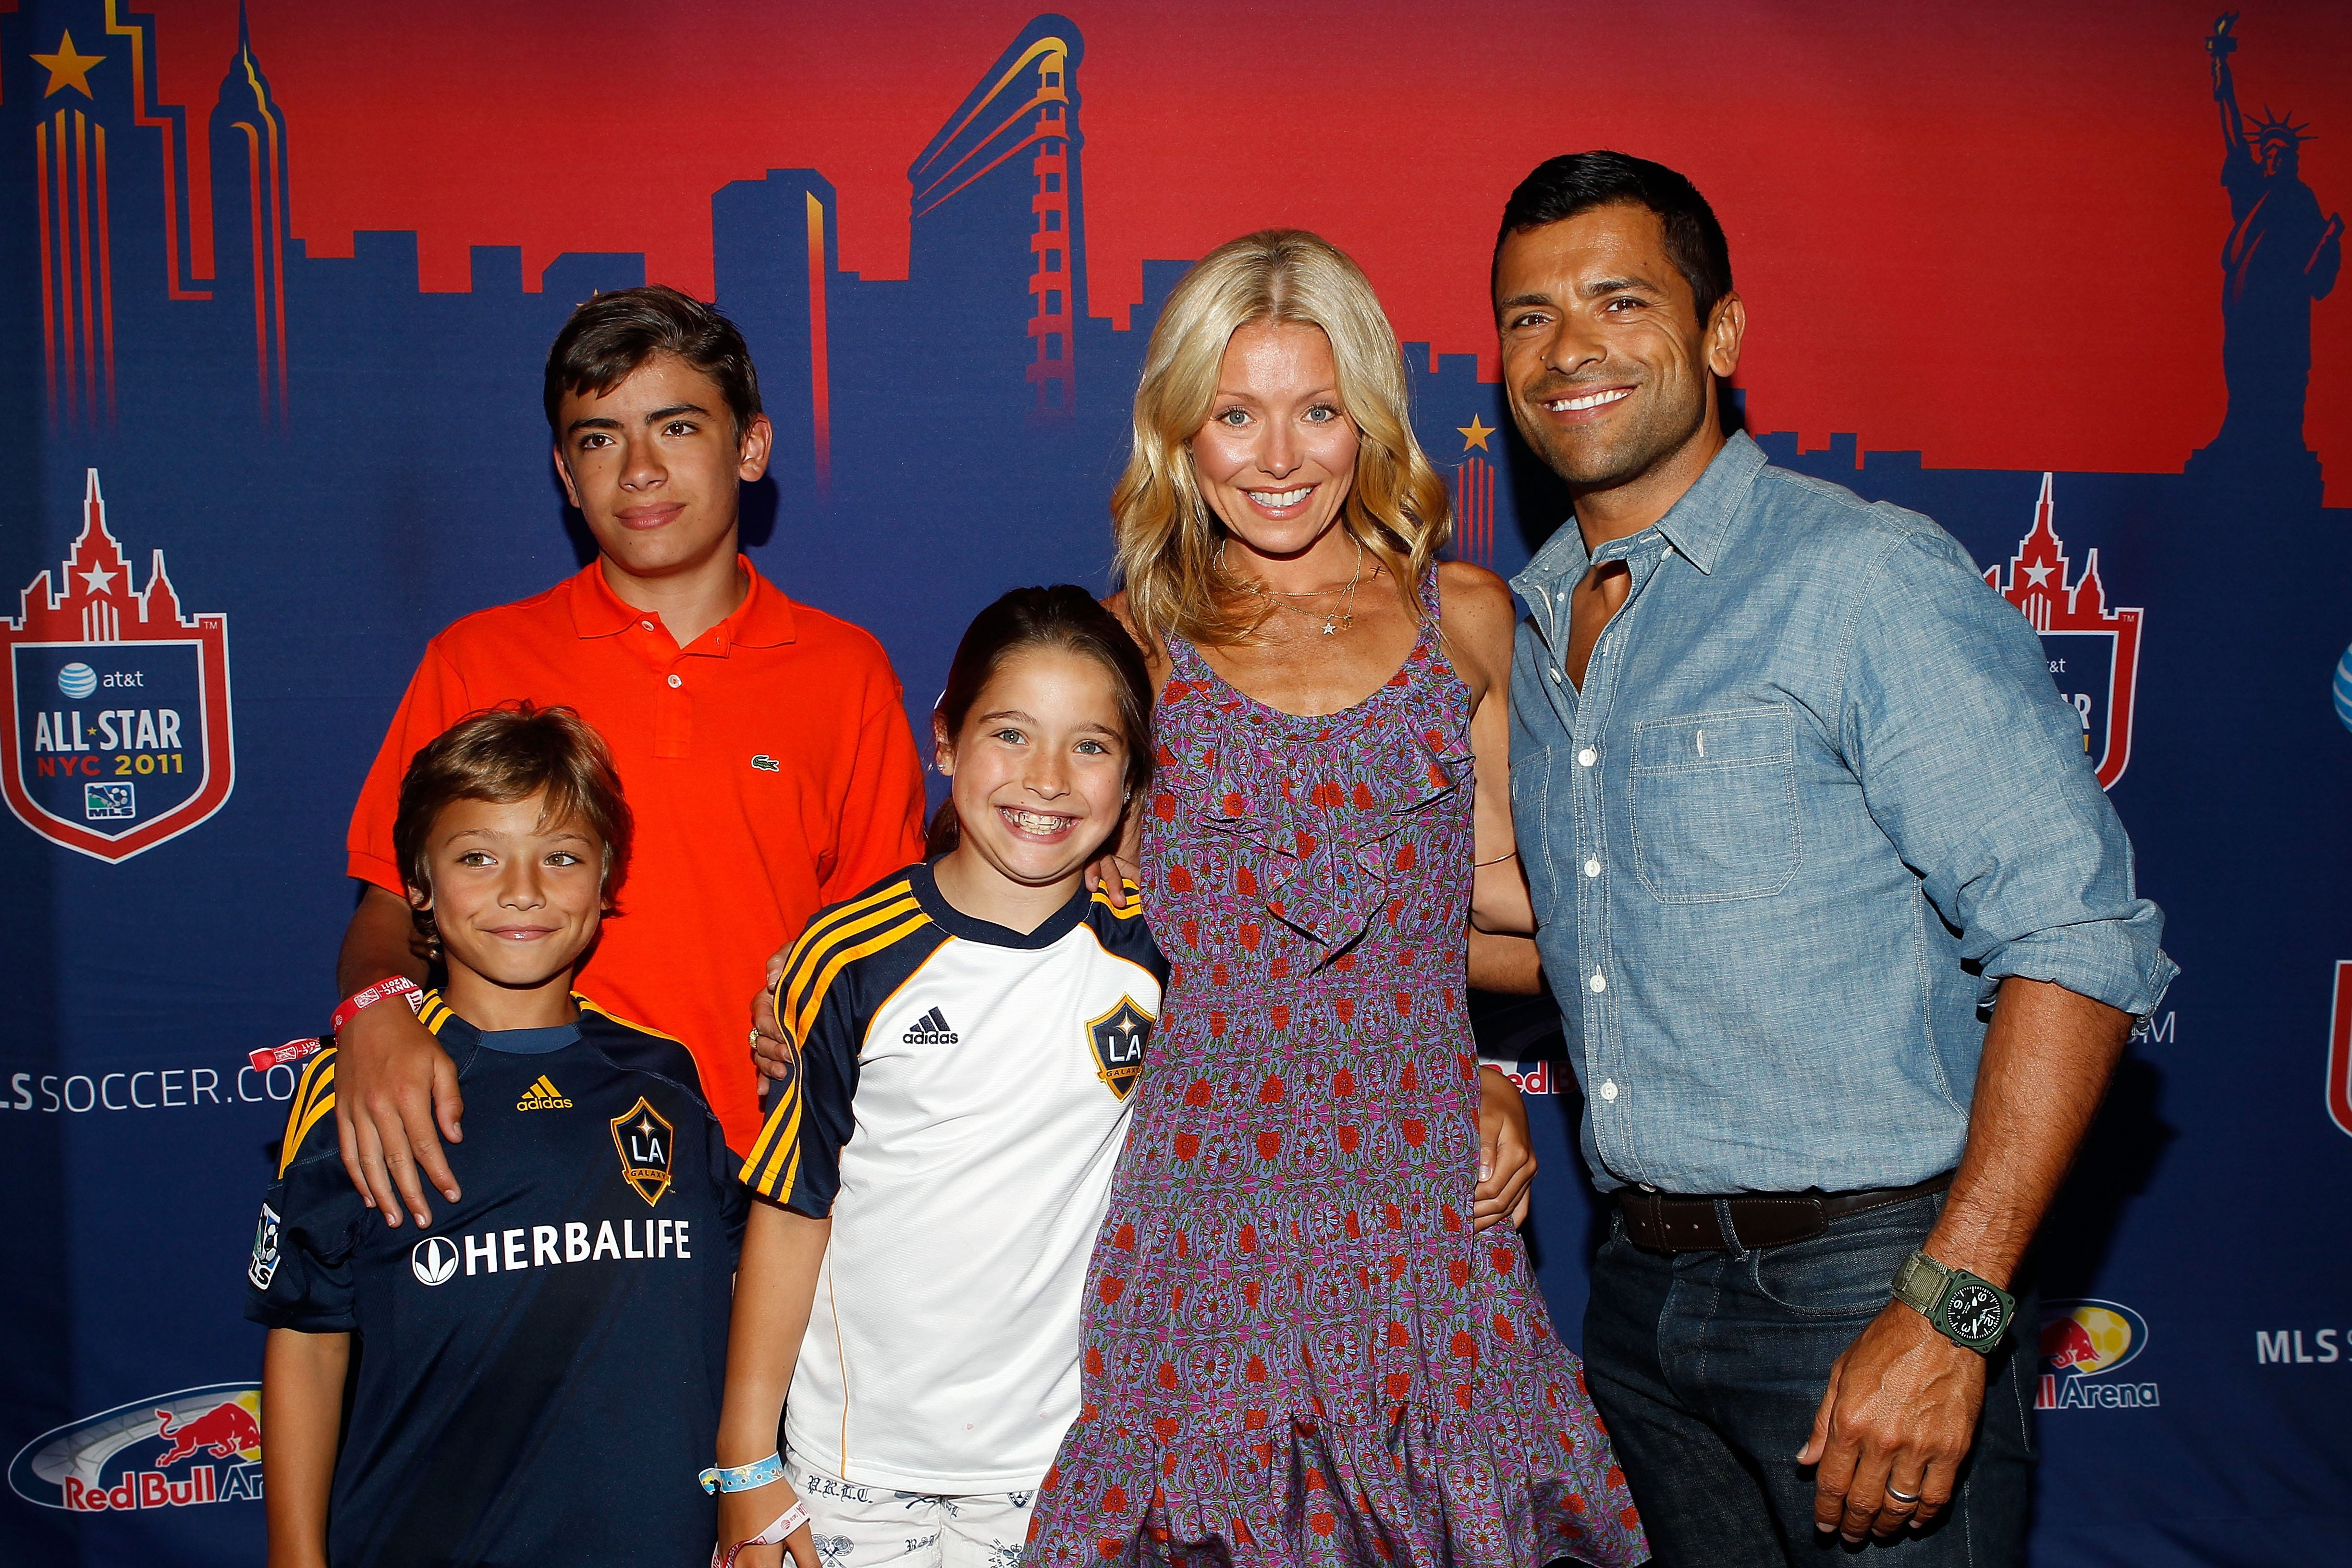 Kelly Ripa (2nd R), her husband Mark Consuelos (R) and their kids smiles for a photo prior to the MLS All-Star Game at Red Bull Arena on July 27, 2011 in Harrison, New Jersey. | Source: Getty Images